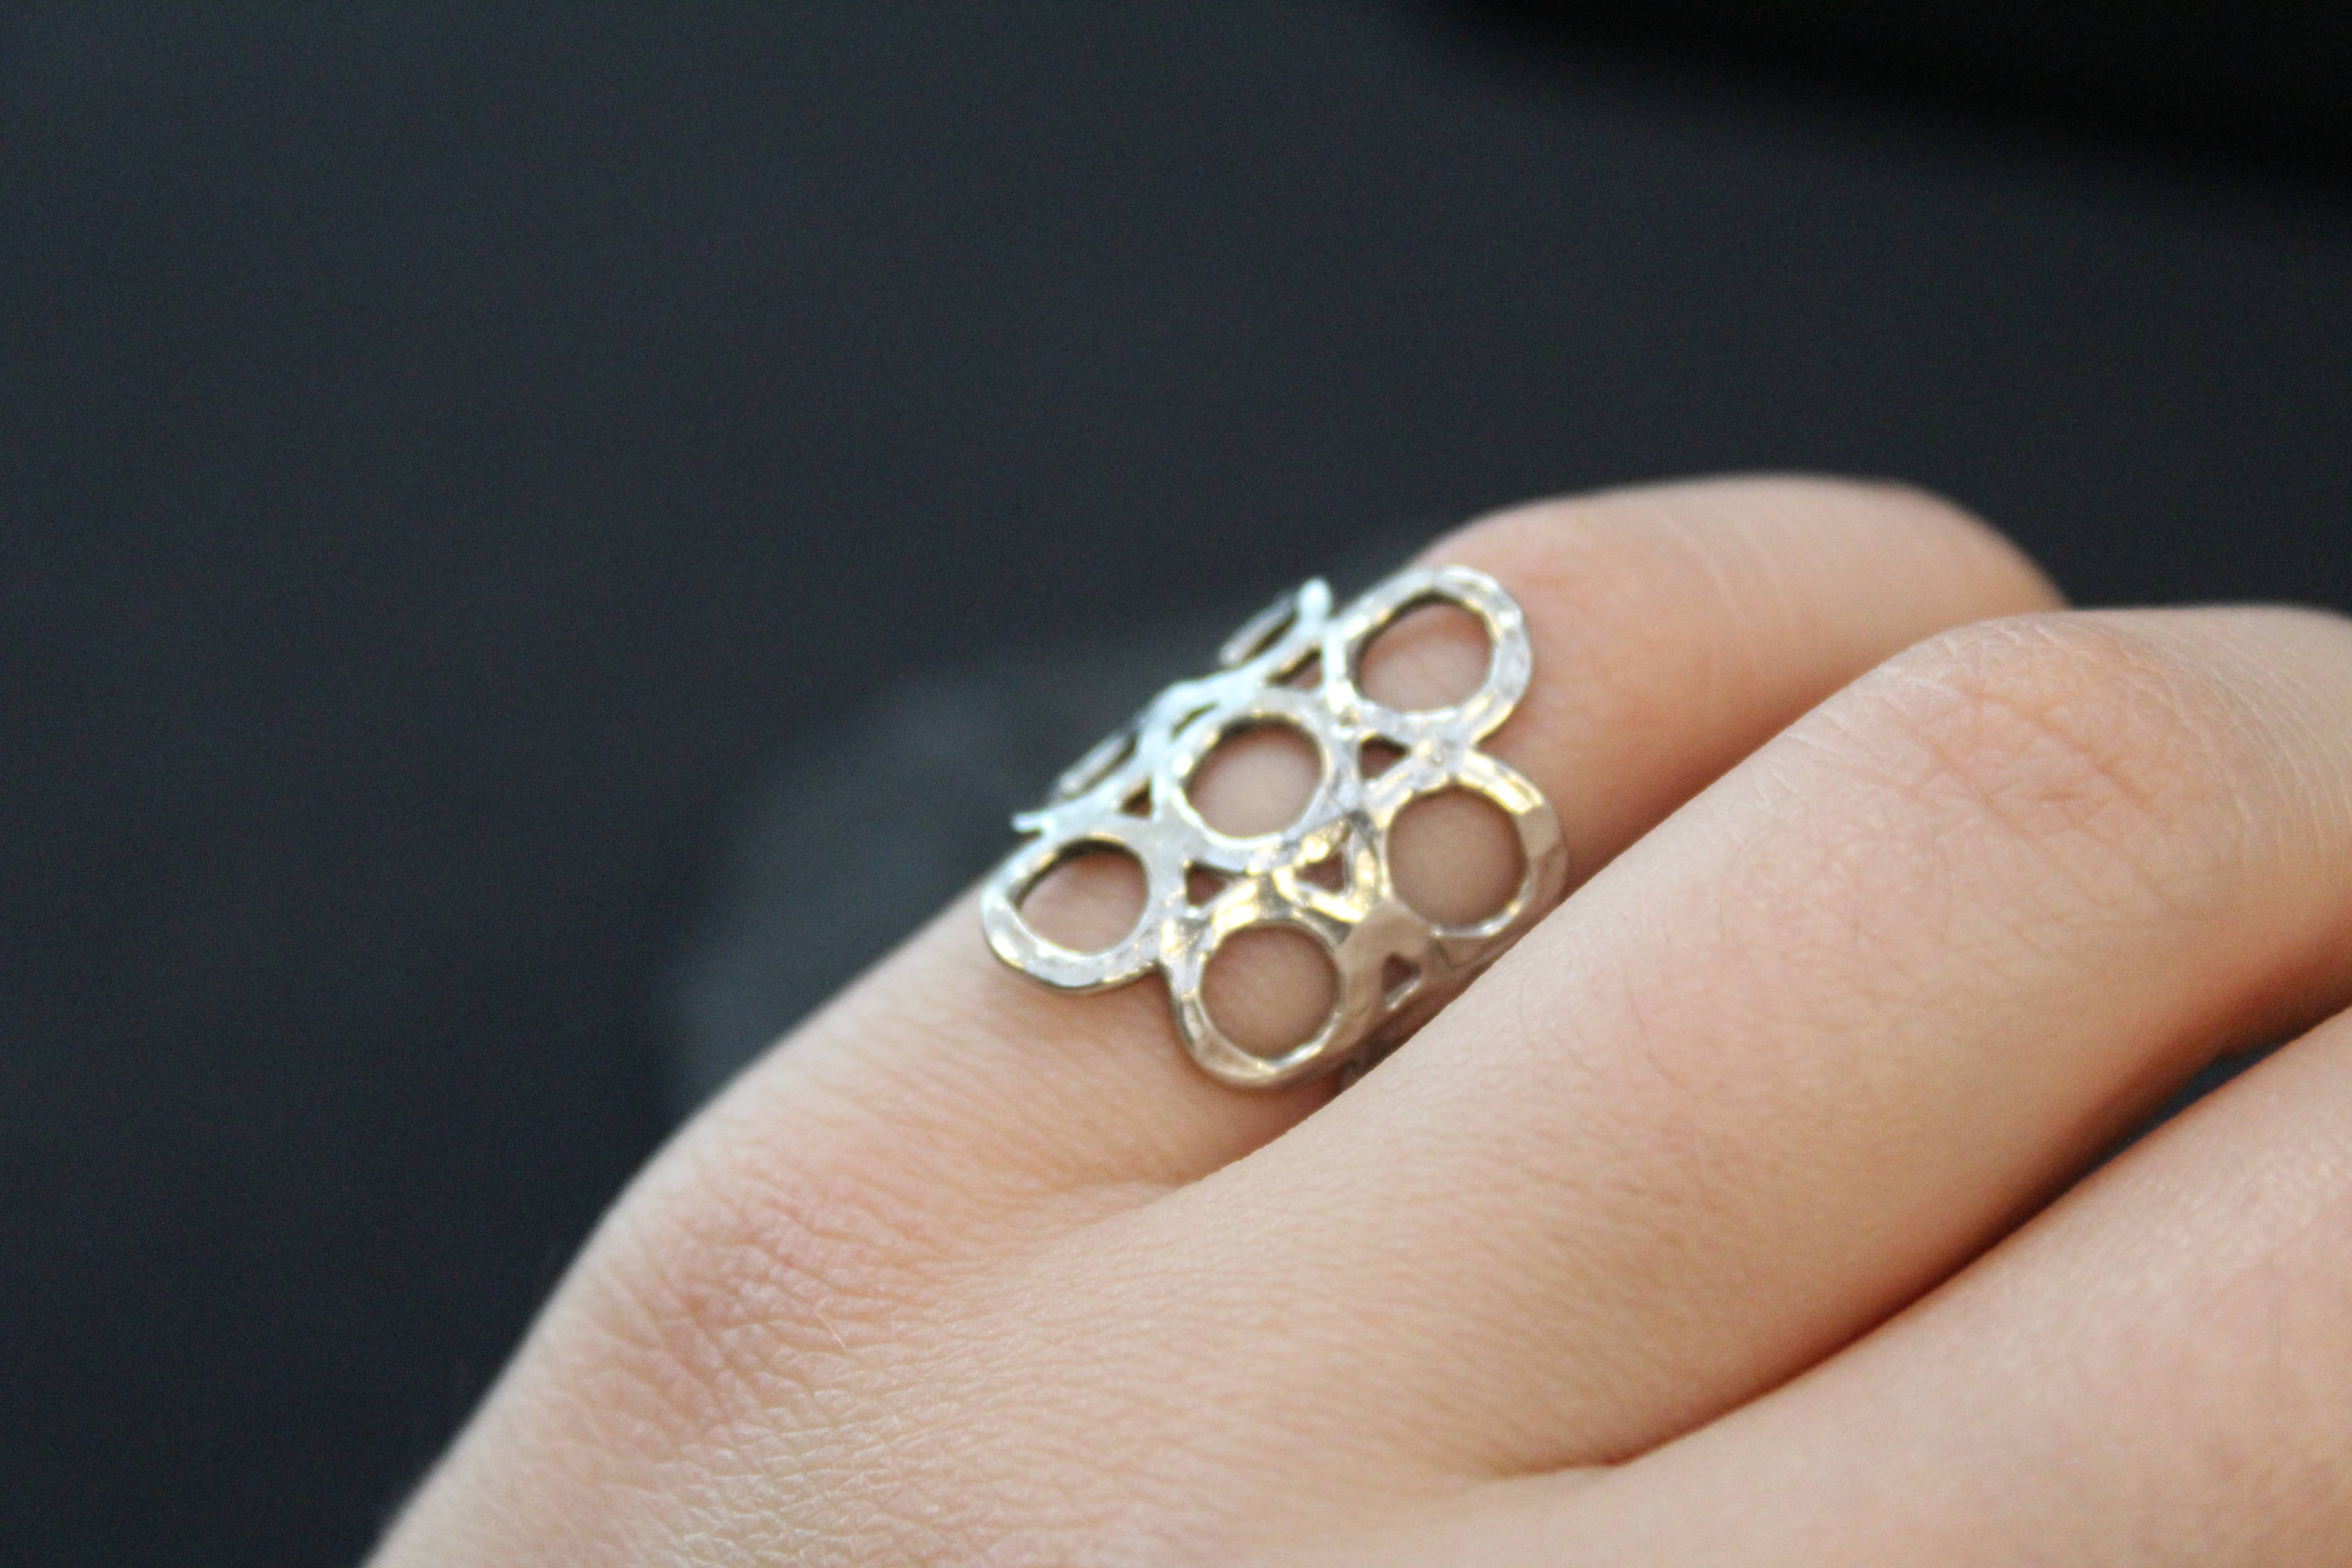 Sterling Silver Modern Open Circle Ring, Open Circle Jewelry For Most Up To Date Honeycomb Lace Rings (Gallery 20 of 25)